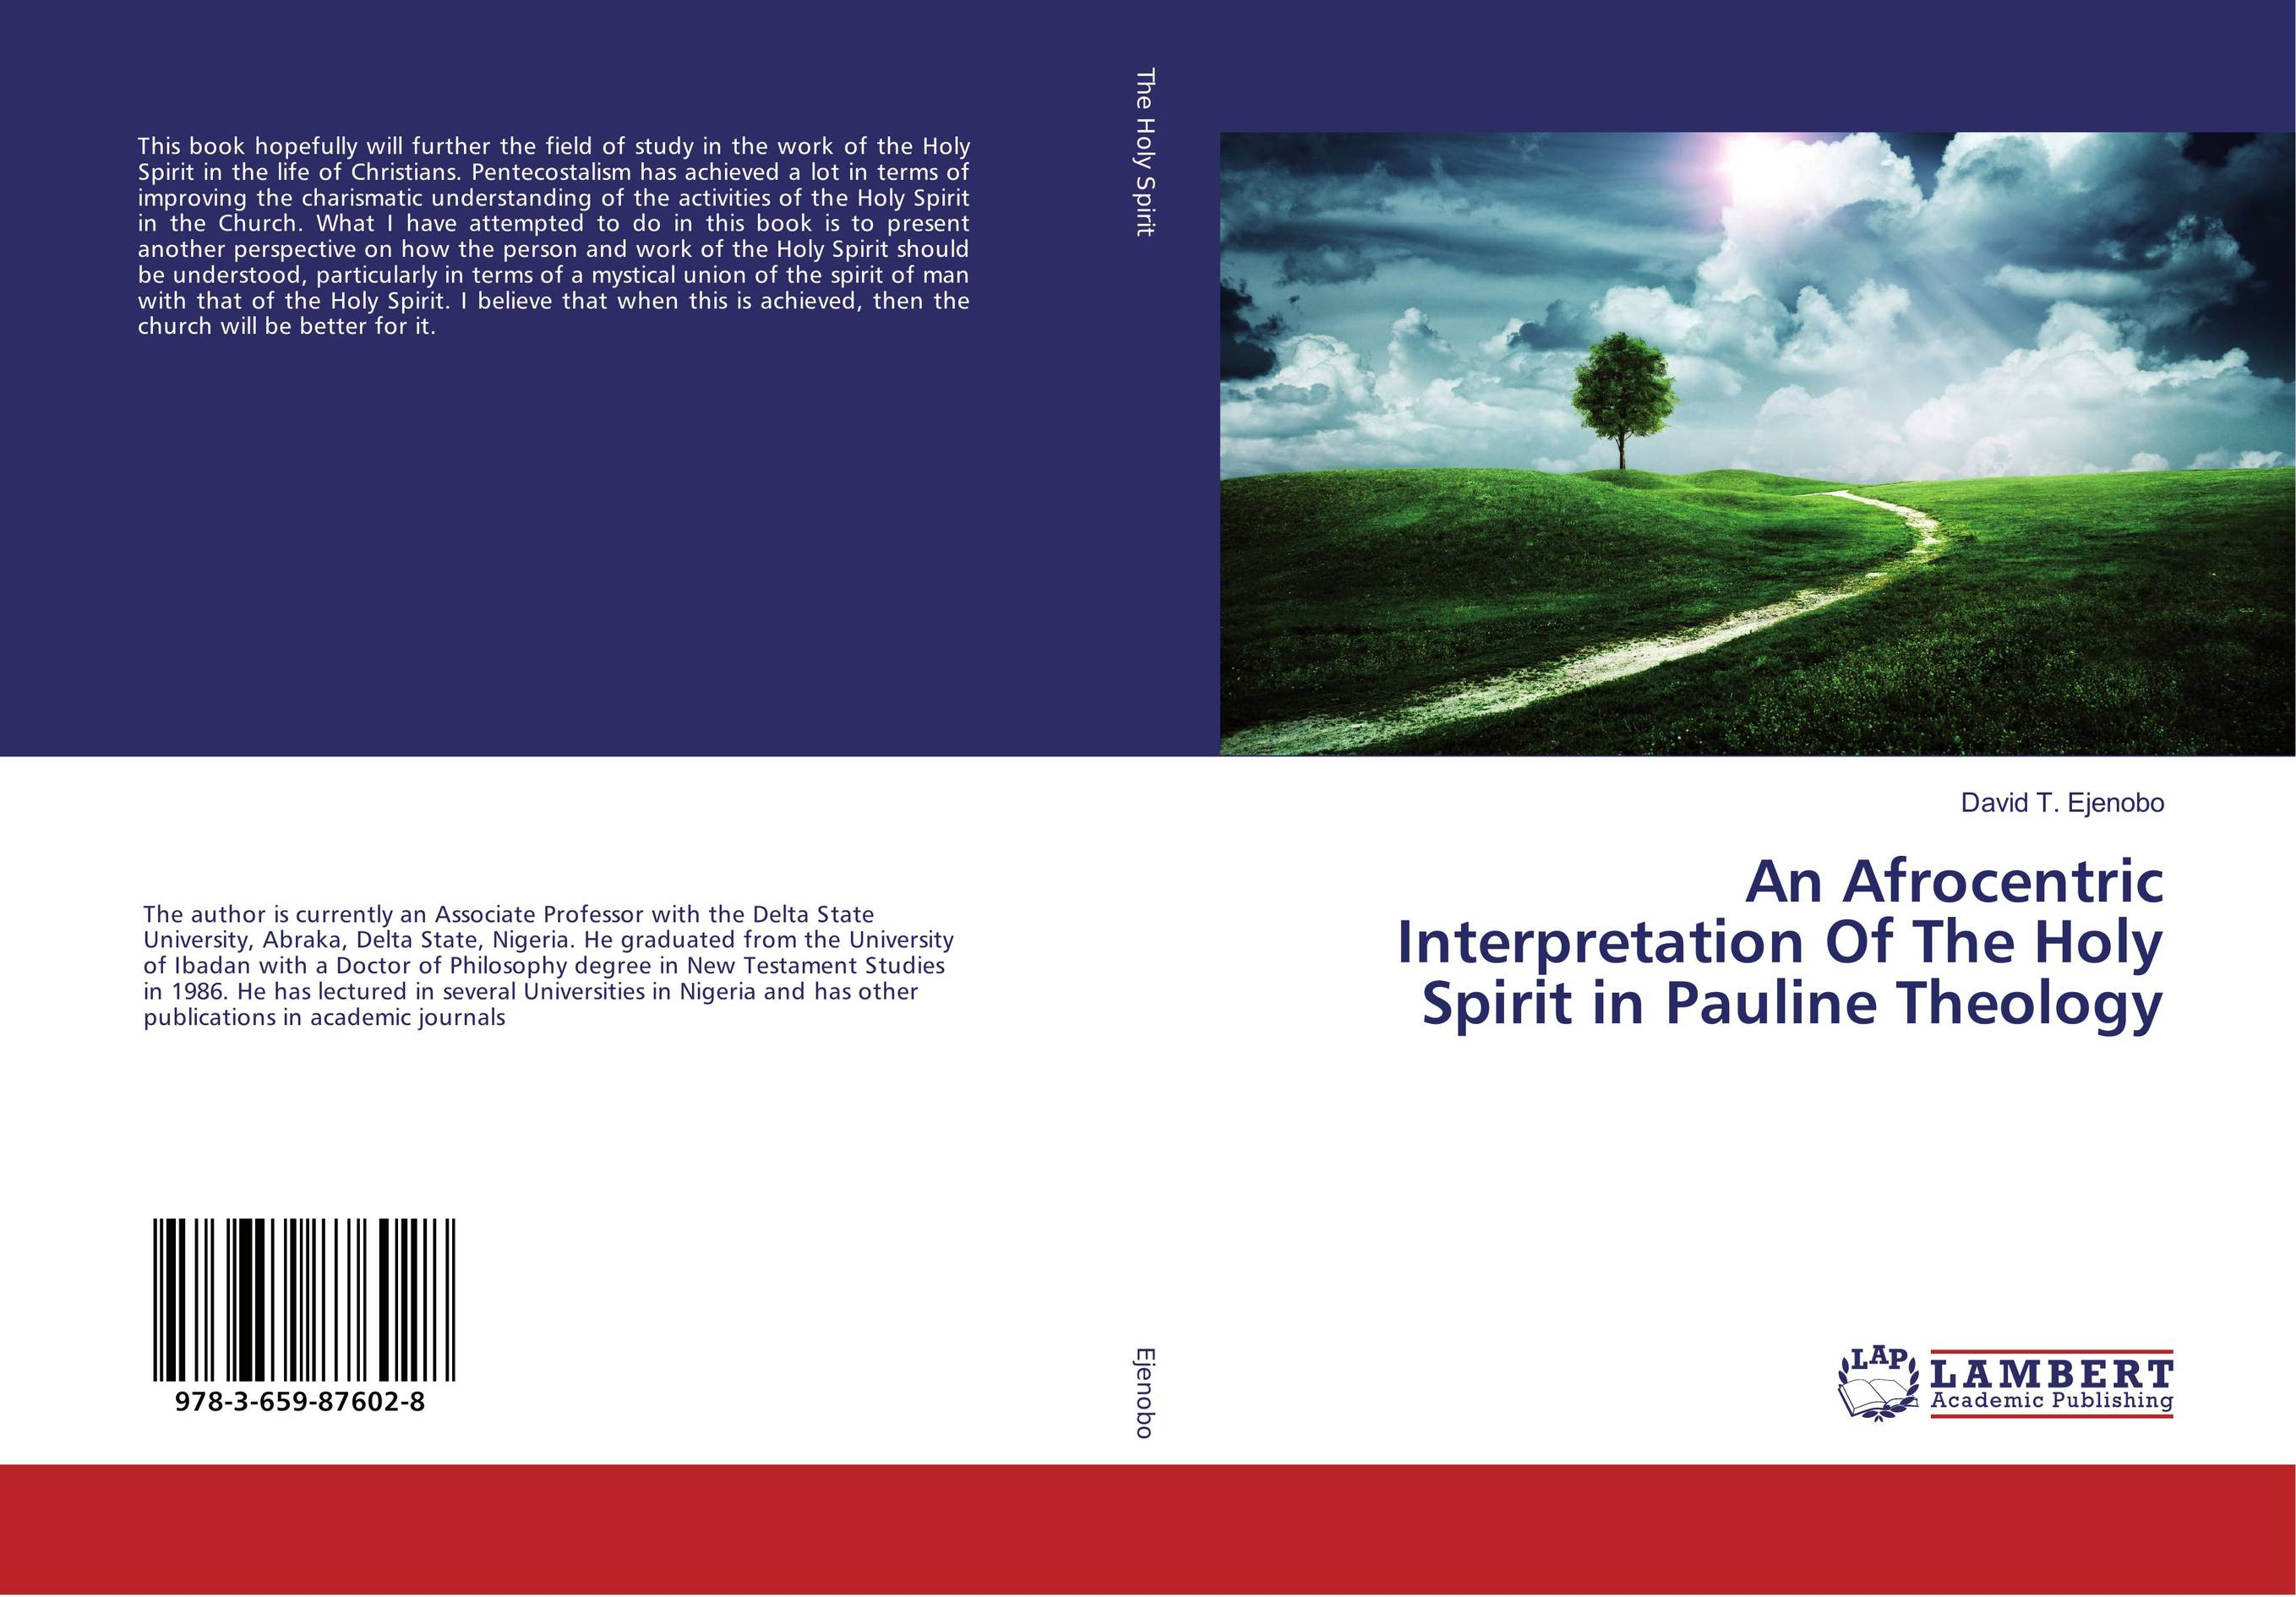 An Afrocentric Interpretation Of The Holy Spirit in Pauline Theology the way of the spirit